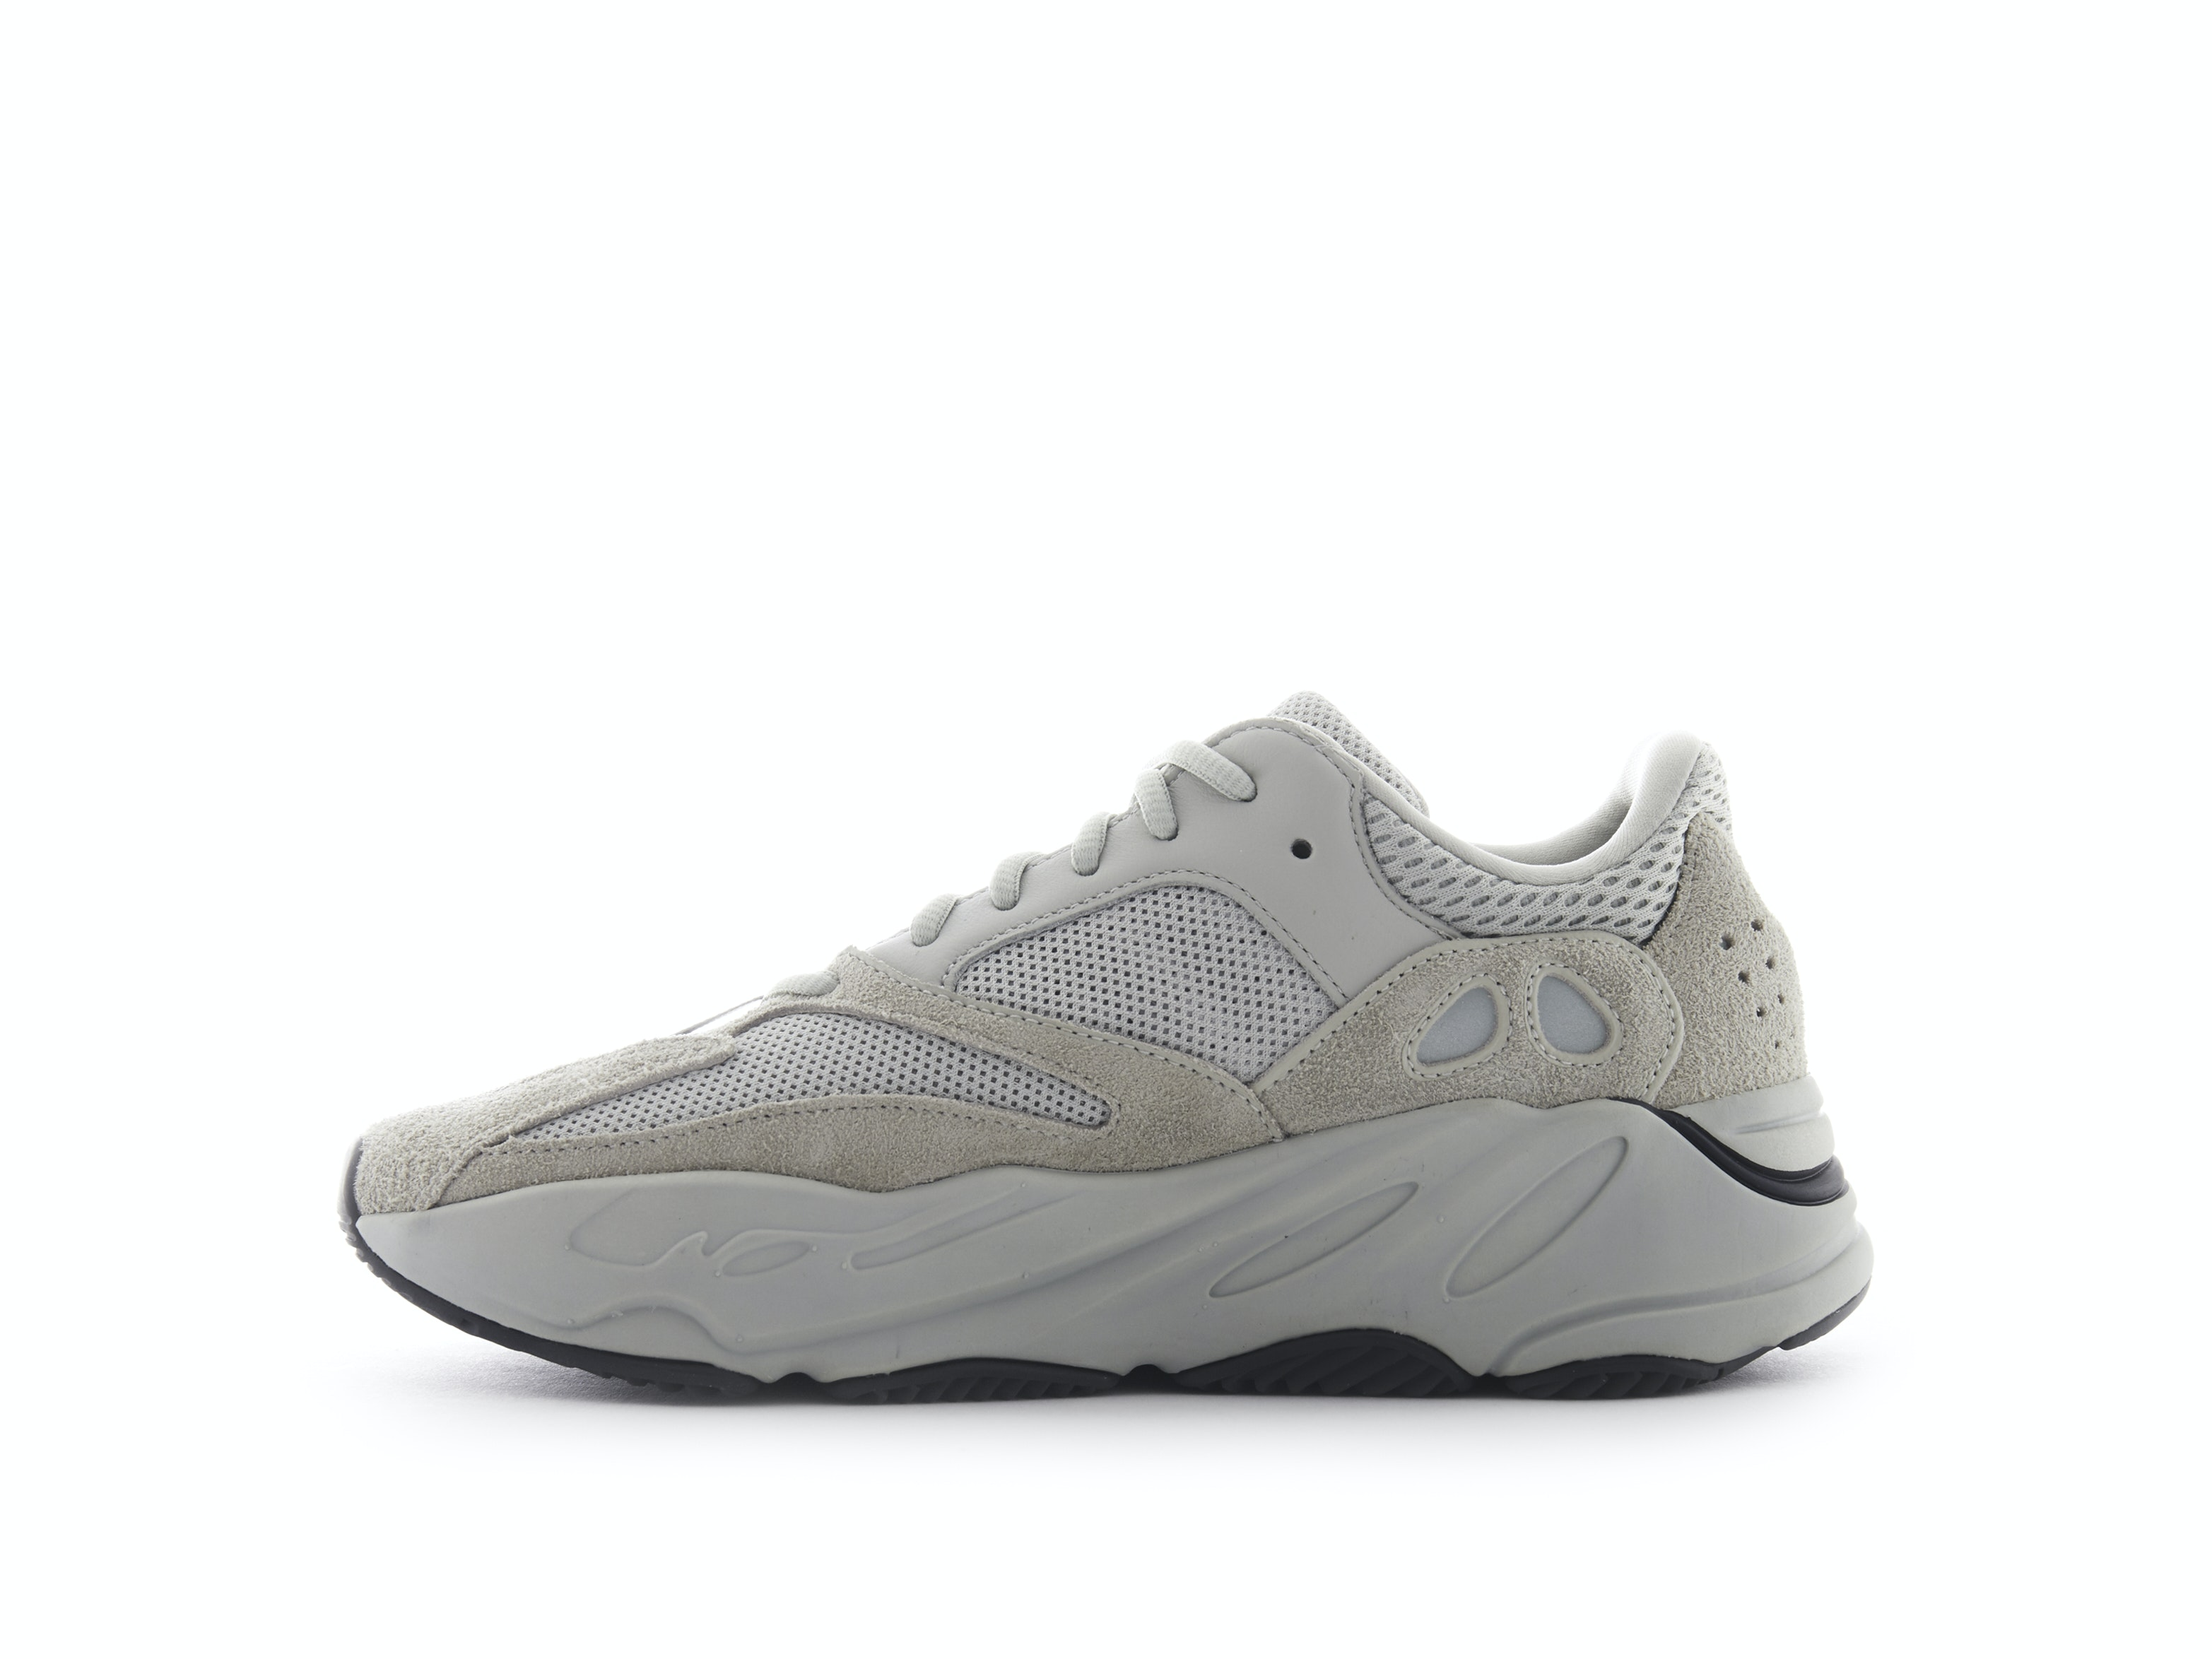 f7783e005 Yeezy Boost 700 Salt. 100% AuthenticAvg Delivery Time  1-2 days. Adidas    EG7487